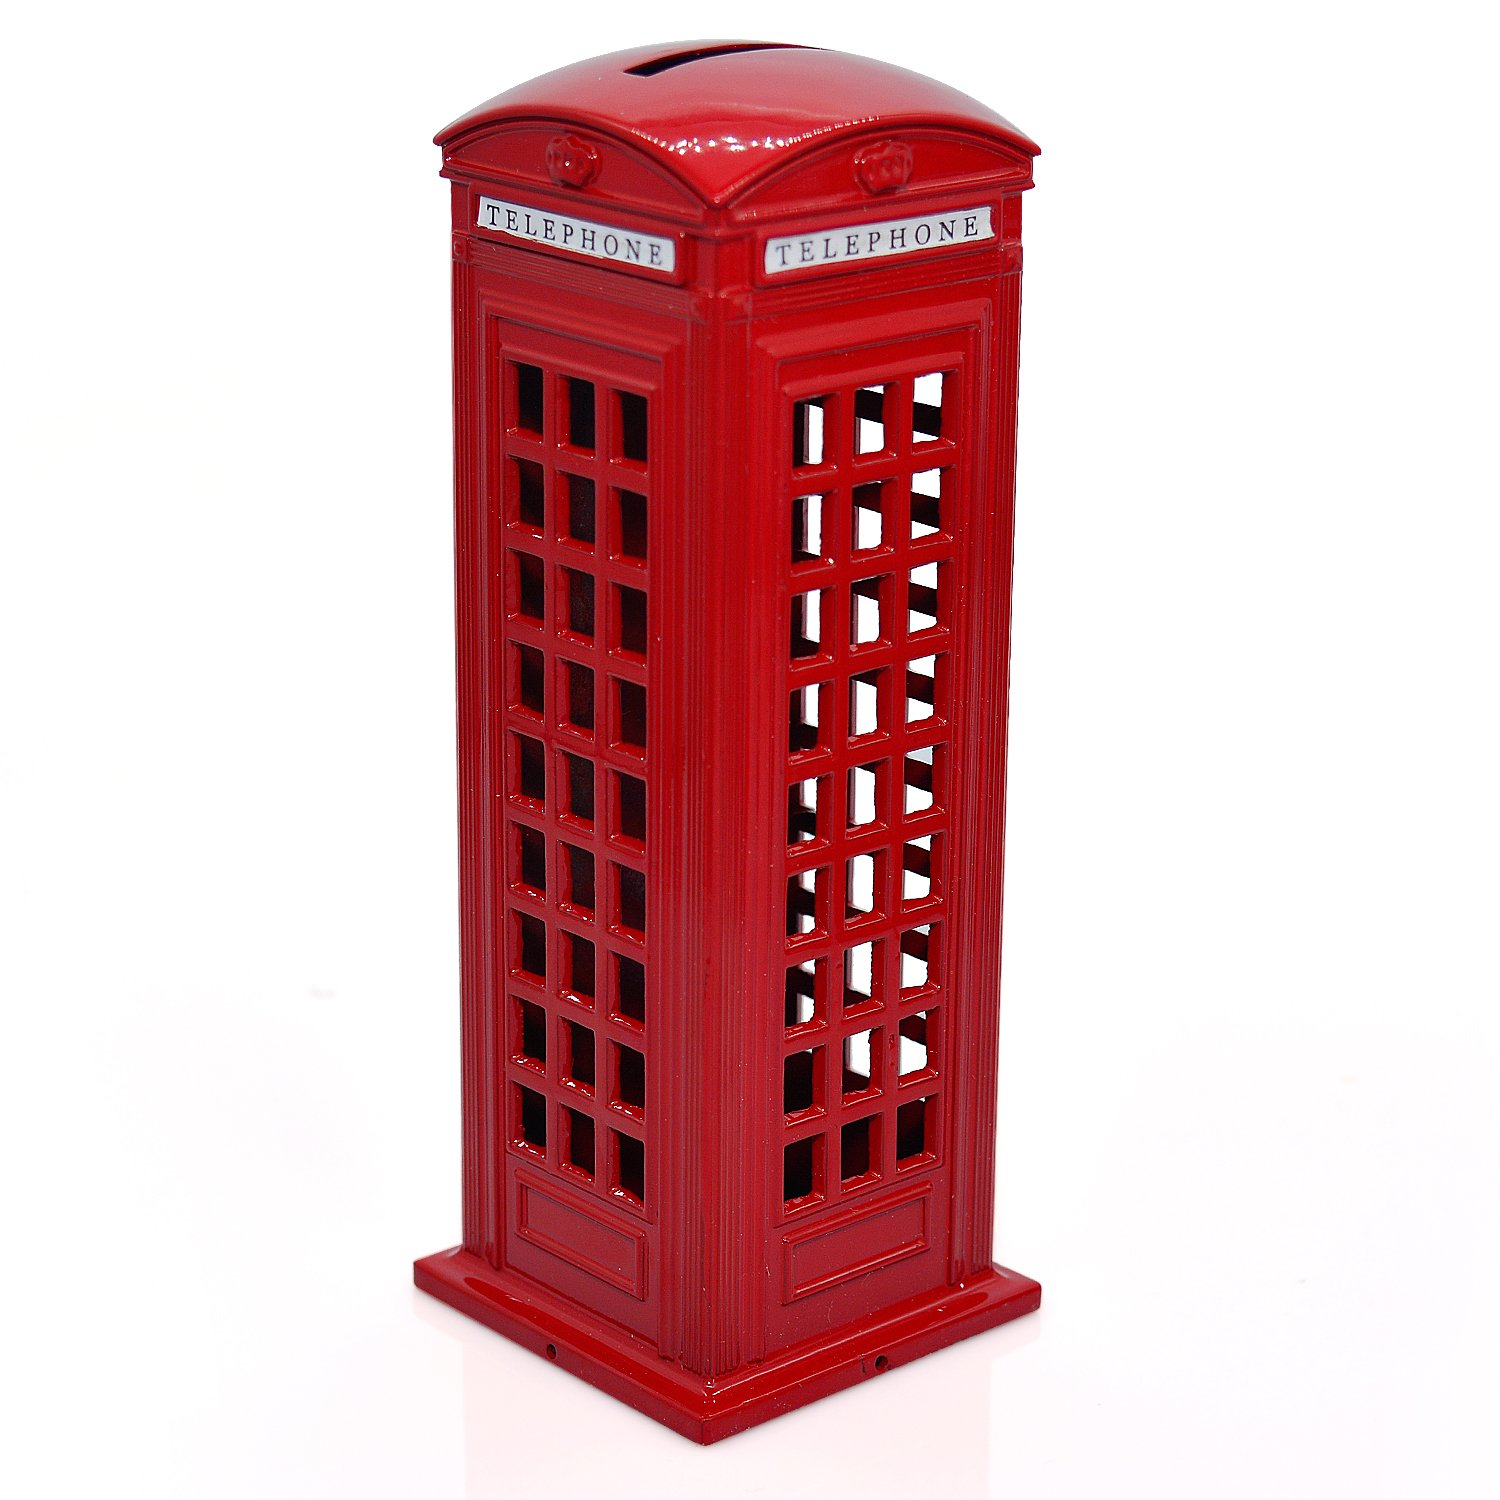 Cafurty Telephone Piggy Bank, Red Metal London Street Telephone Booth Piggy Bank Coin Bank Coin Box - Mini(5 H)